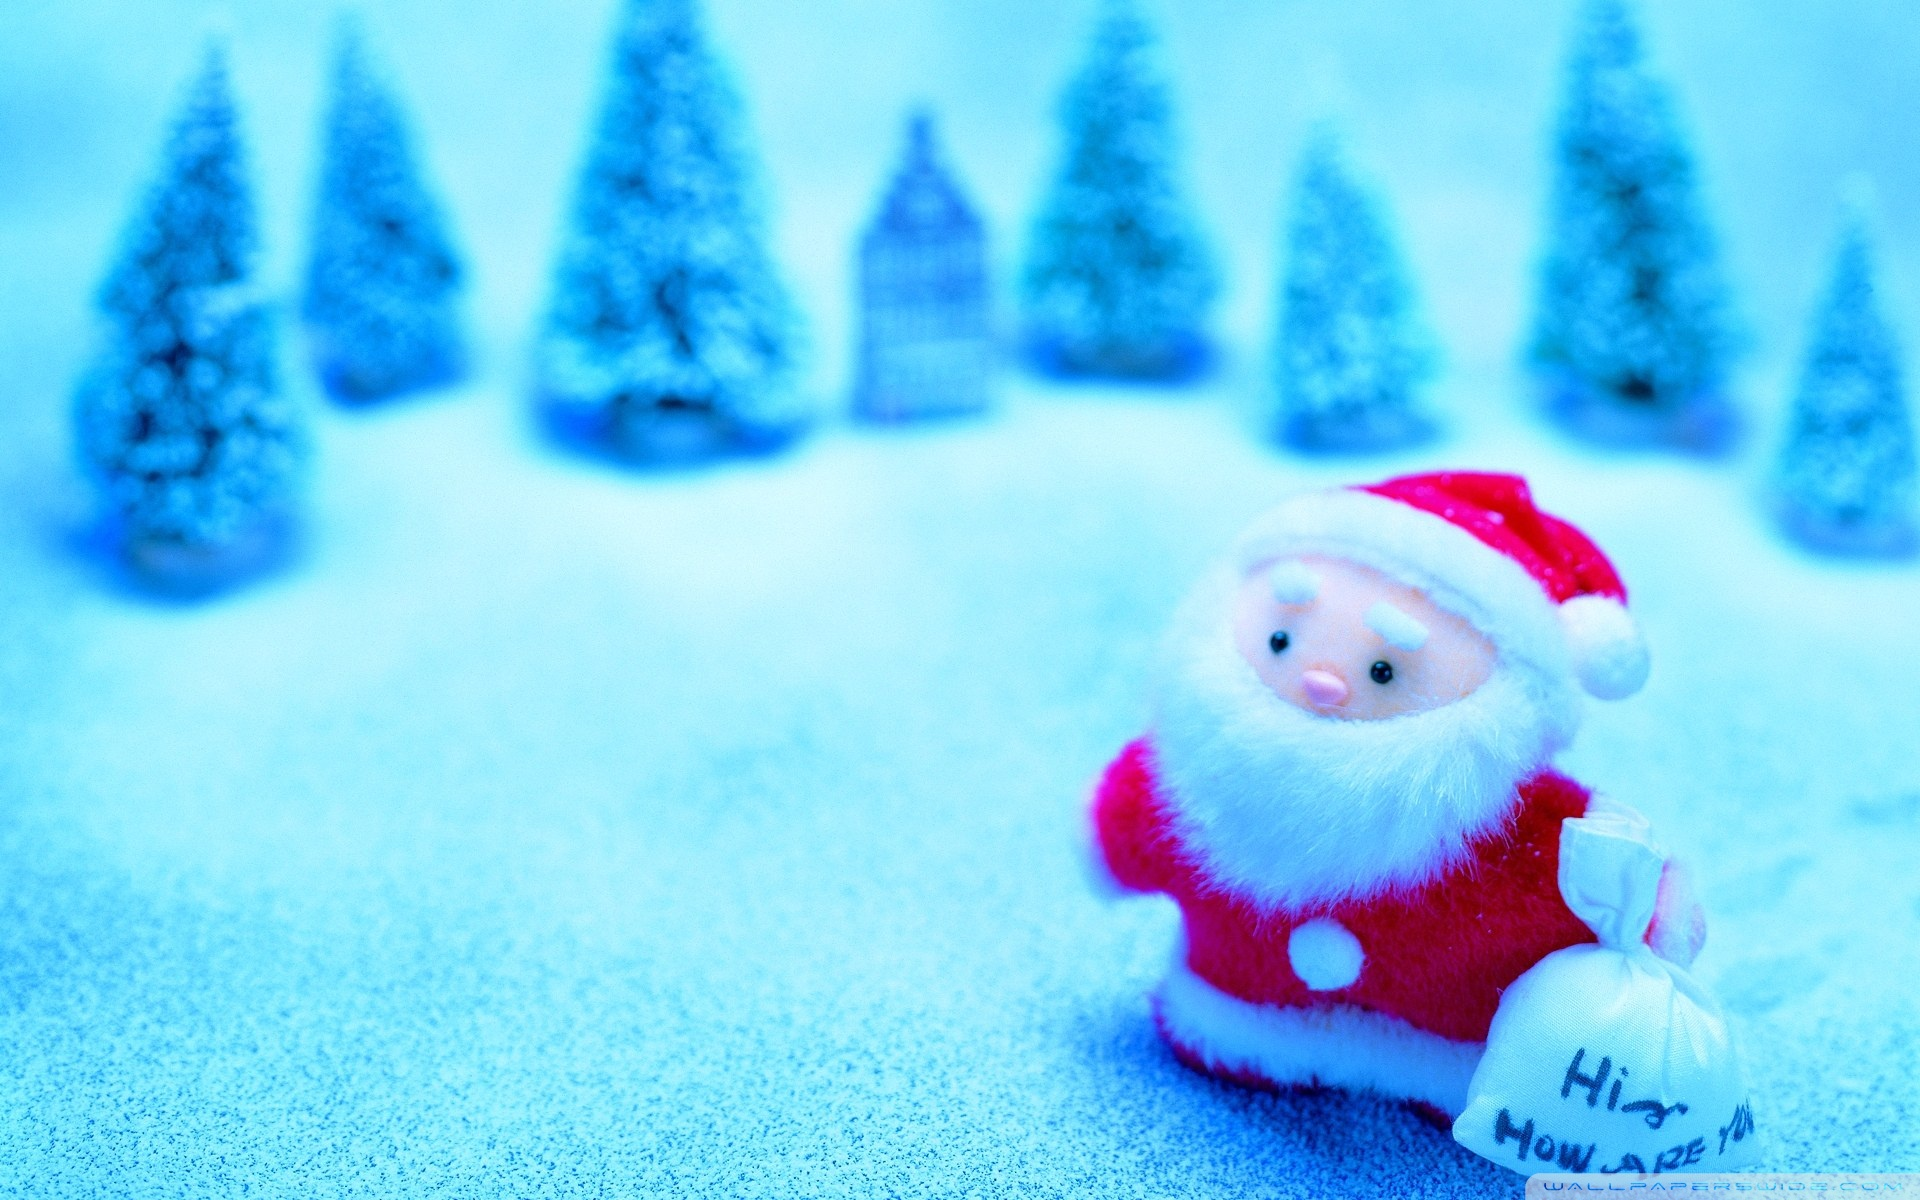 Cute Christmas Screensavers wallpaper 1920x1200 79333 1920x1200